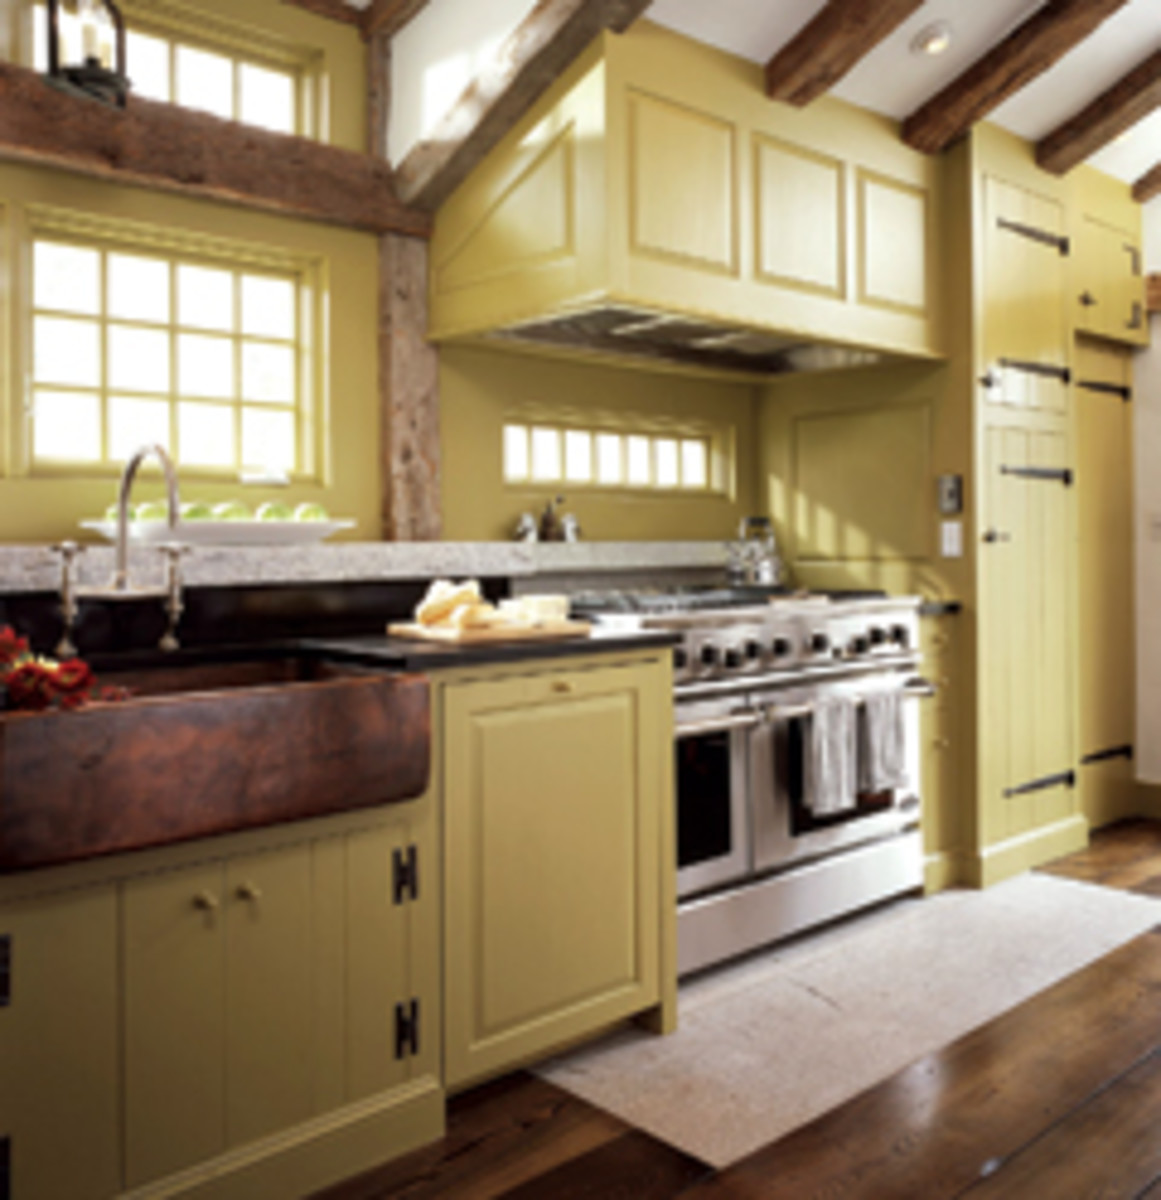 St. John's Bridge created this kitchen from Eastern white pine with a milk-paint finish.